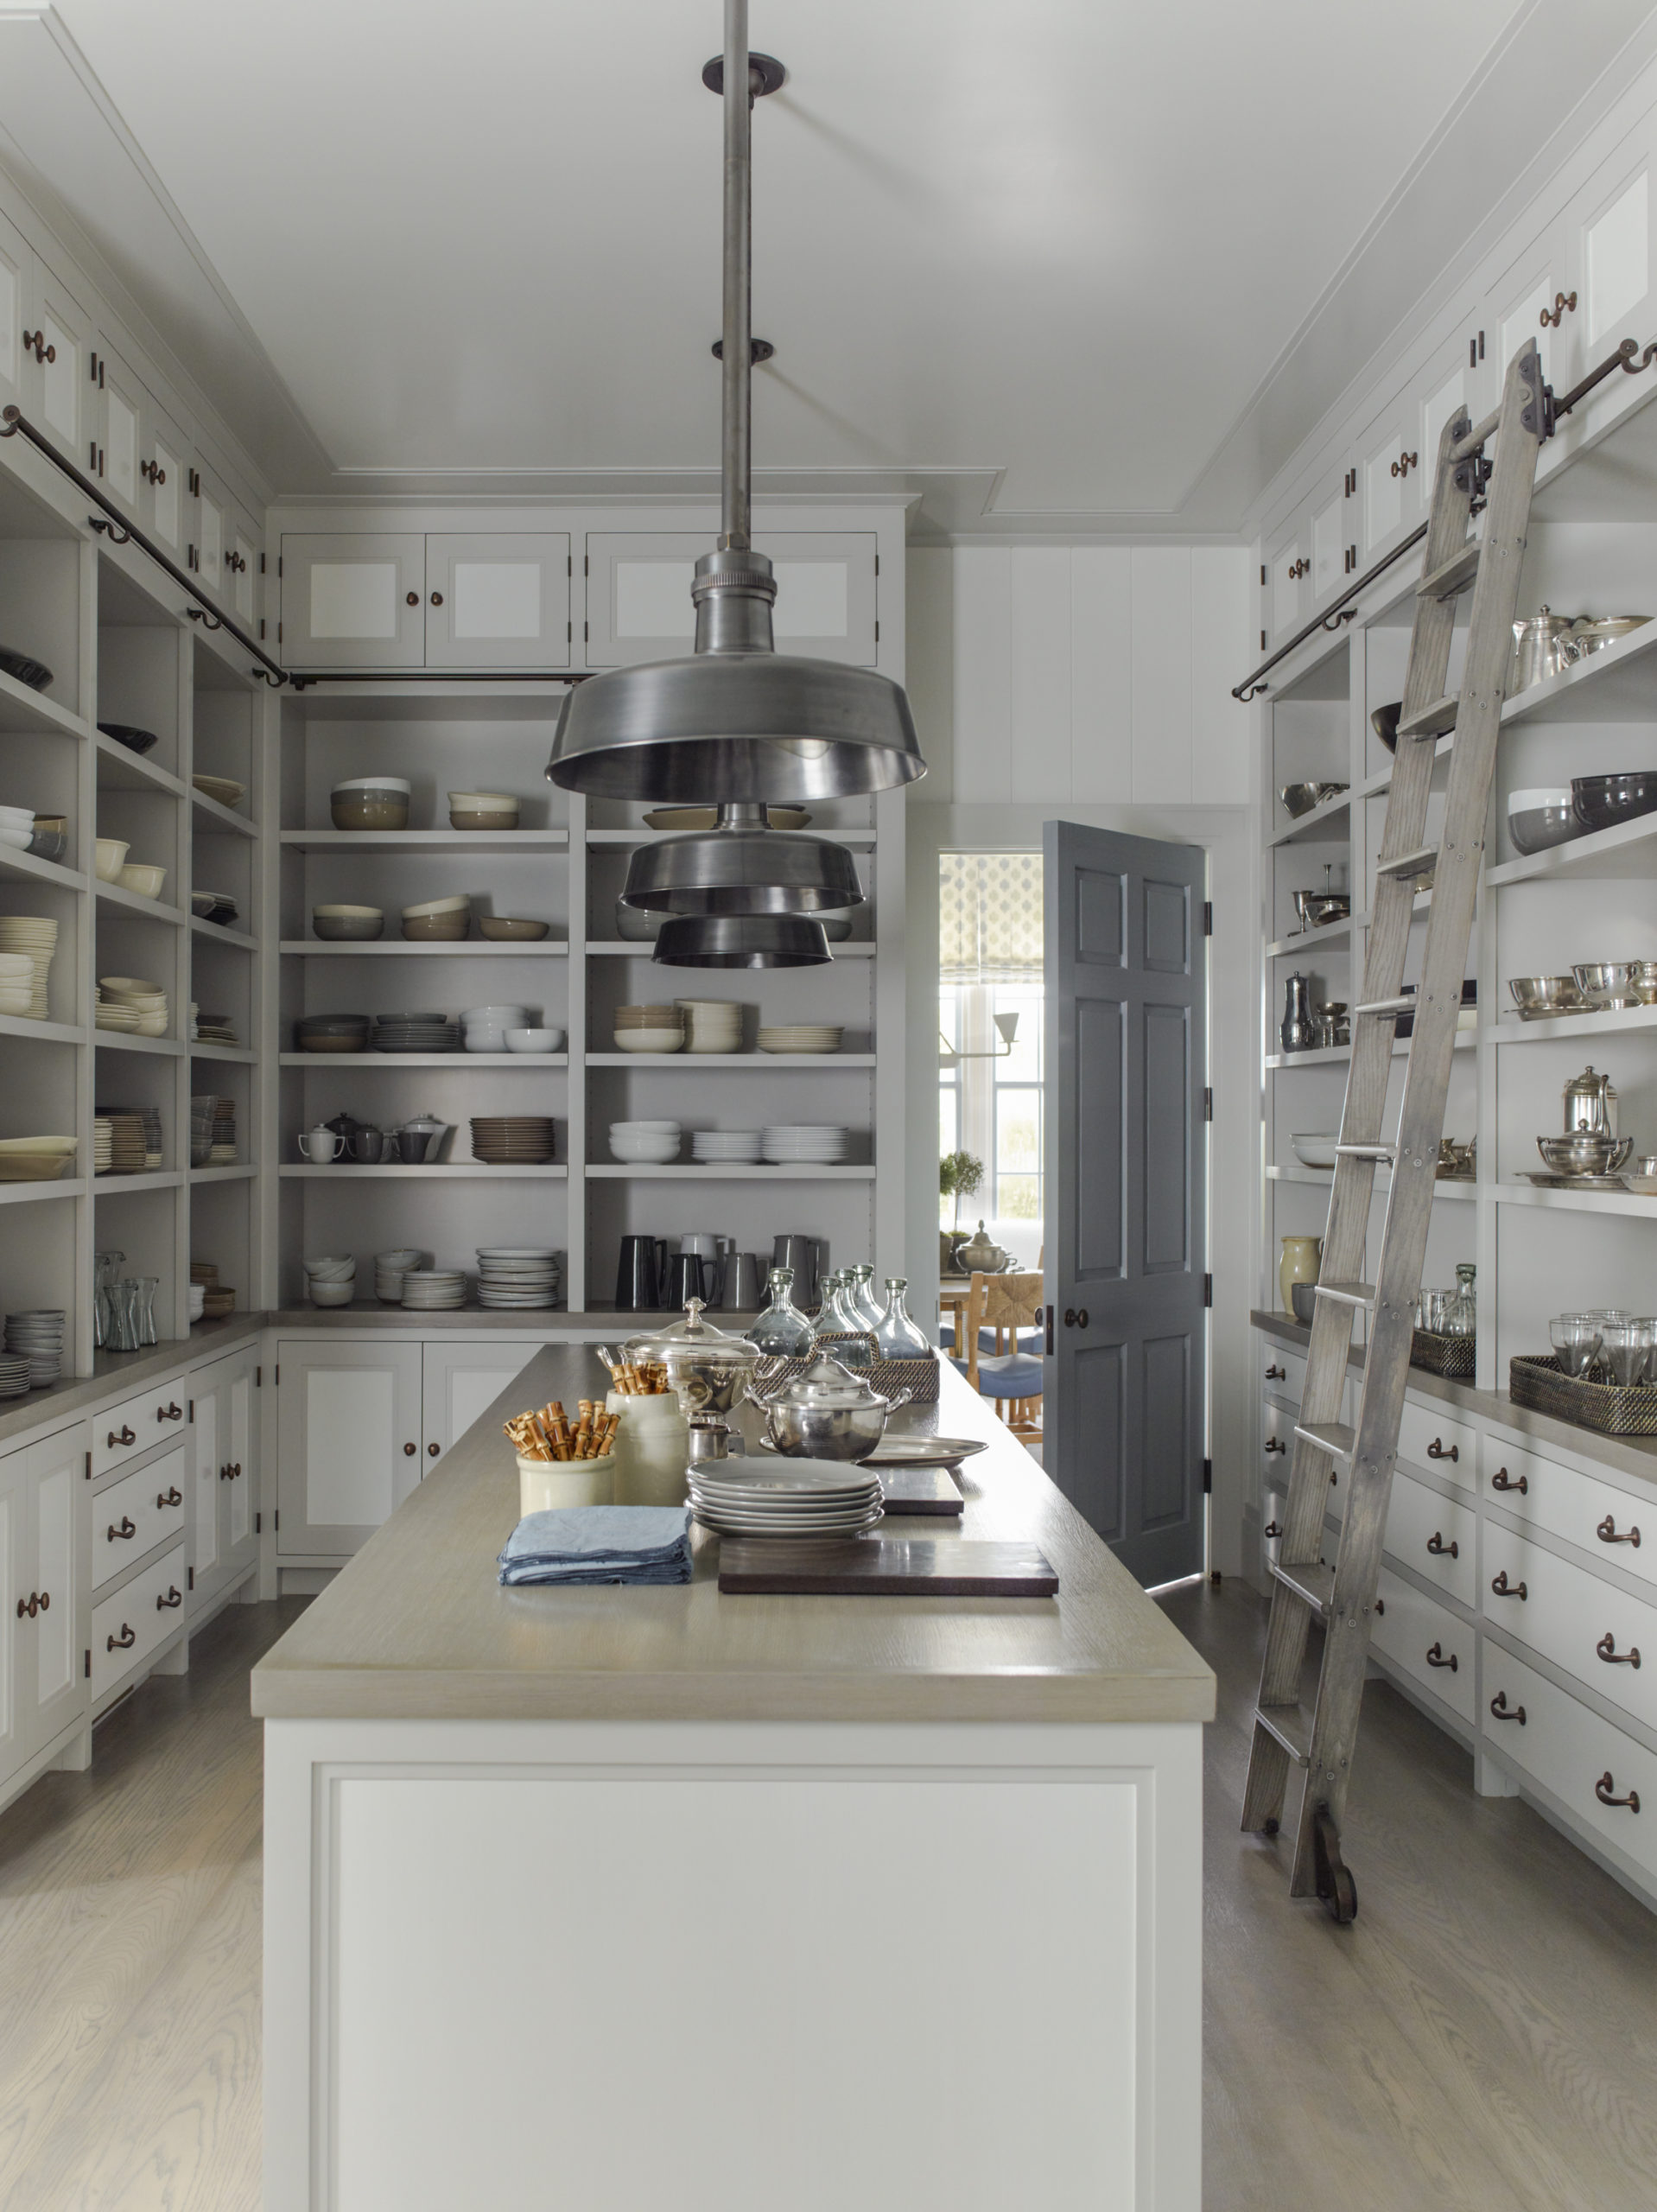 Pantry designed by Sieve Gambrel.